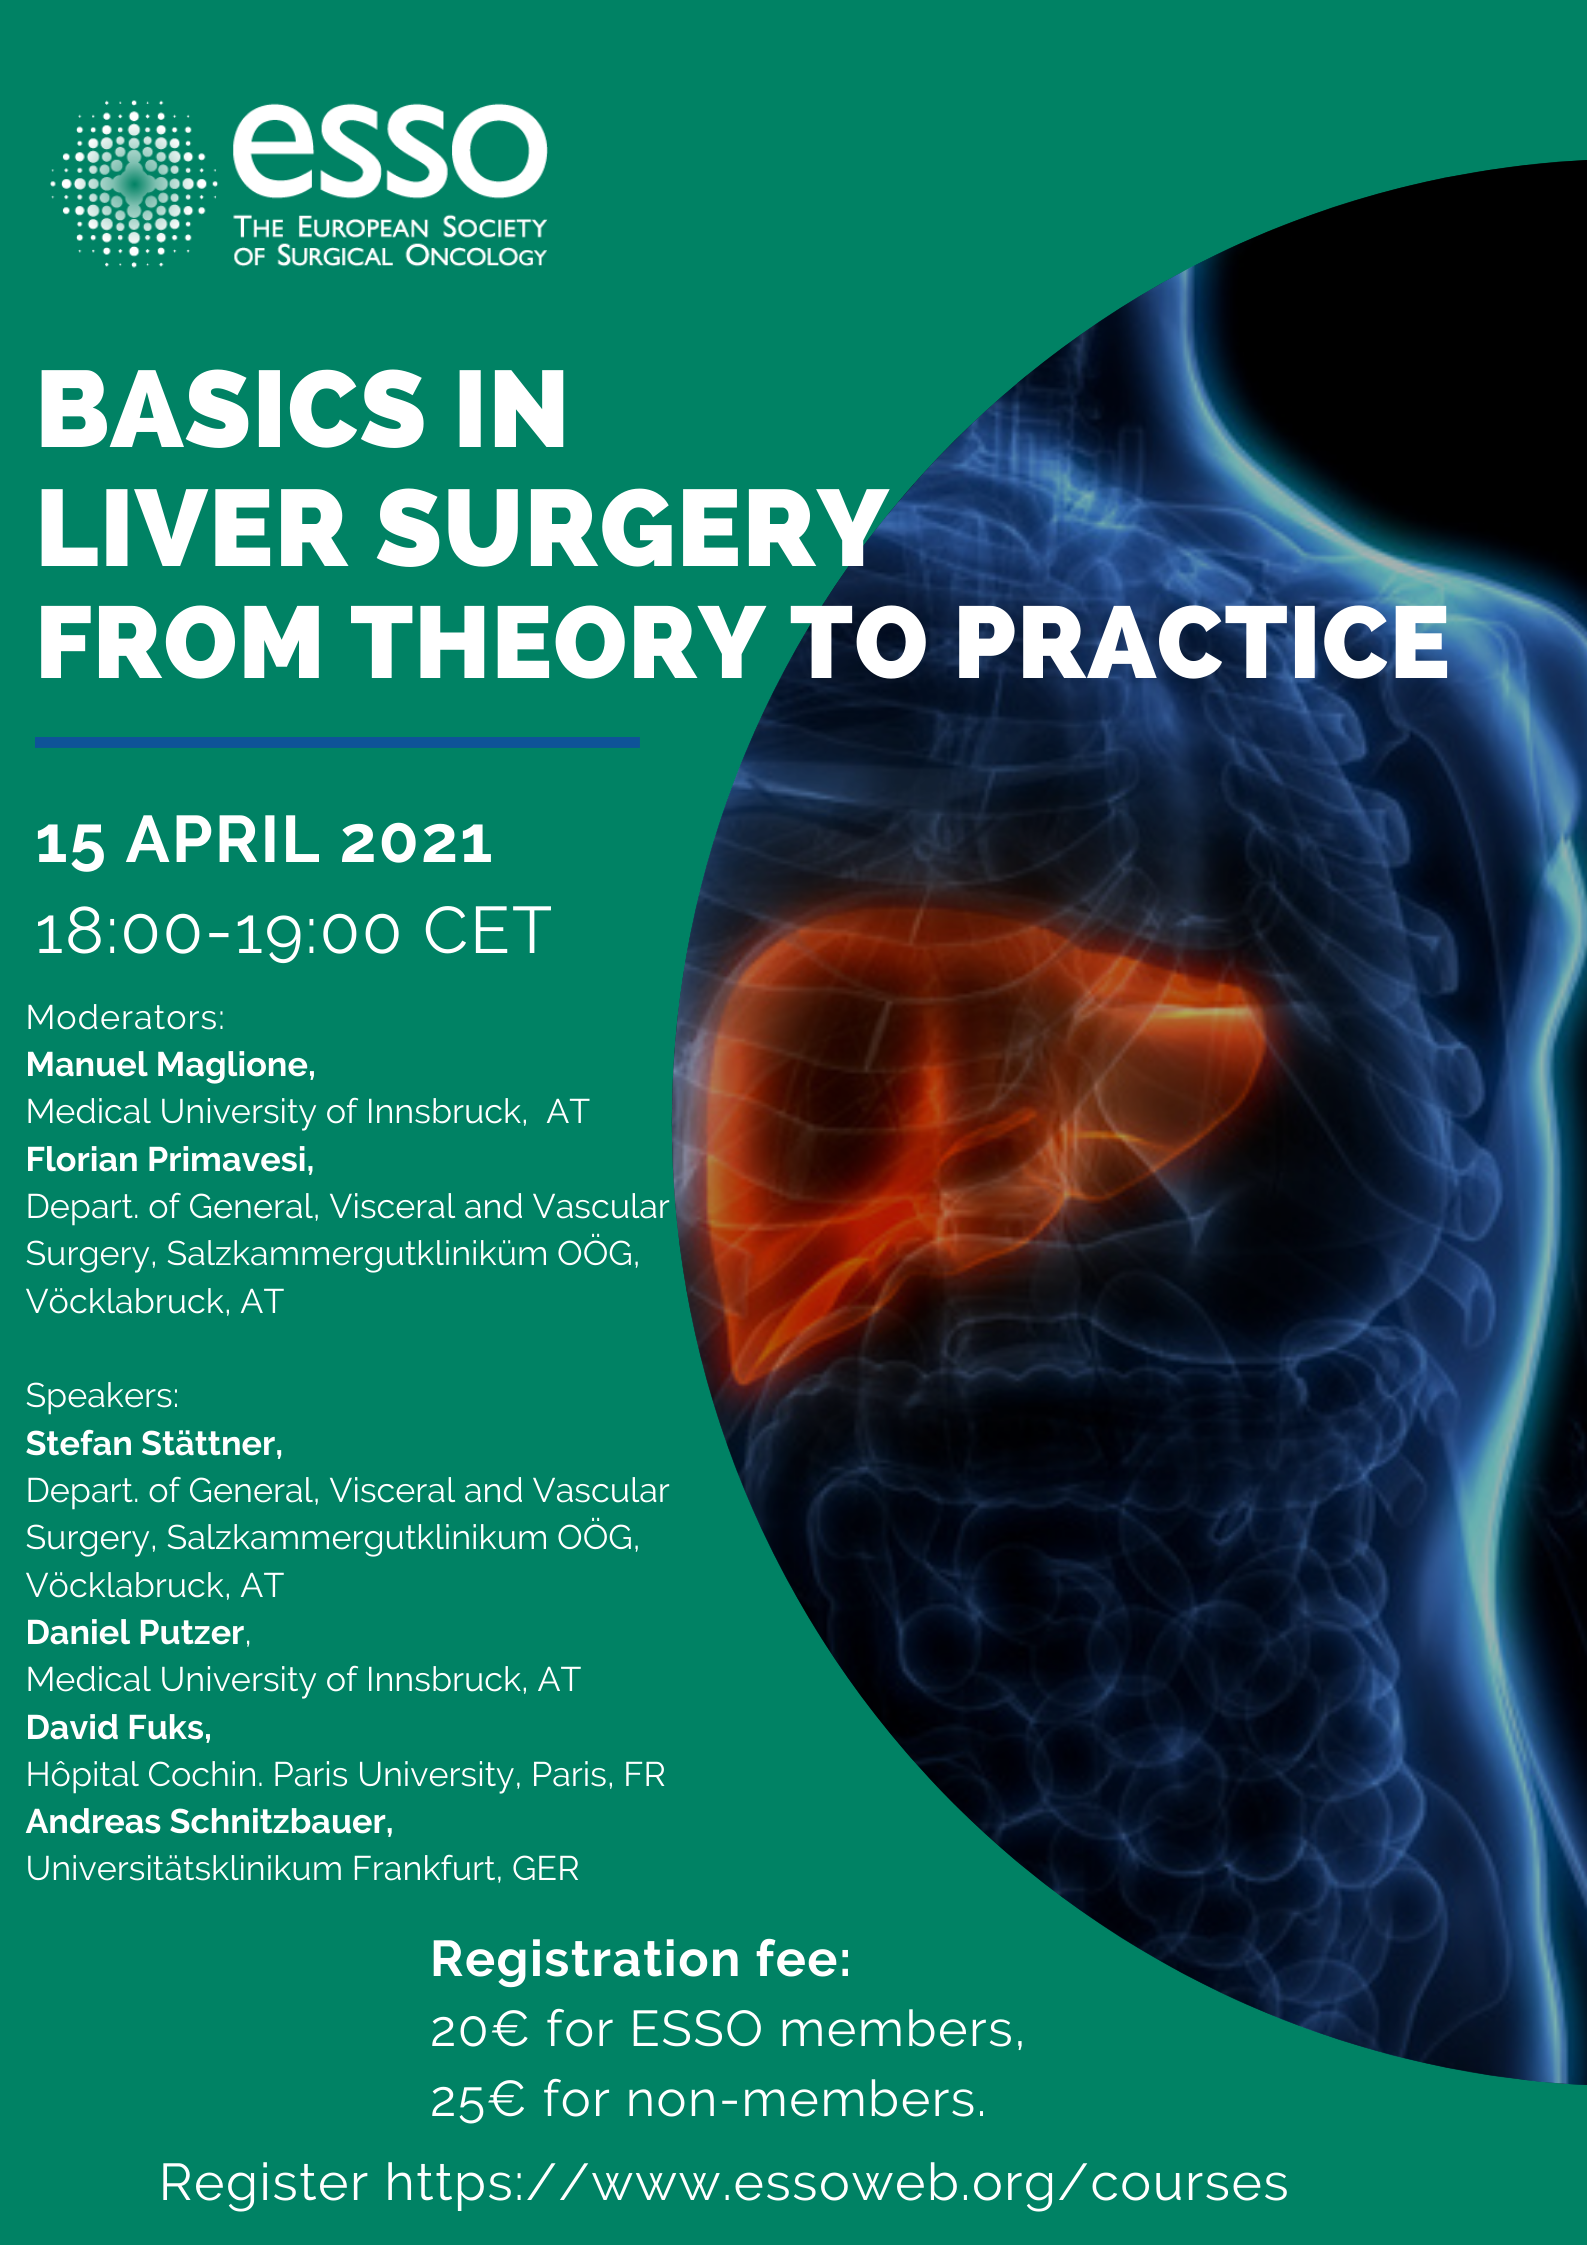 ESSO Webinar: Basics in liver surgery — from theory to practice